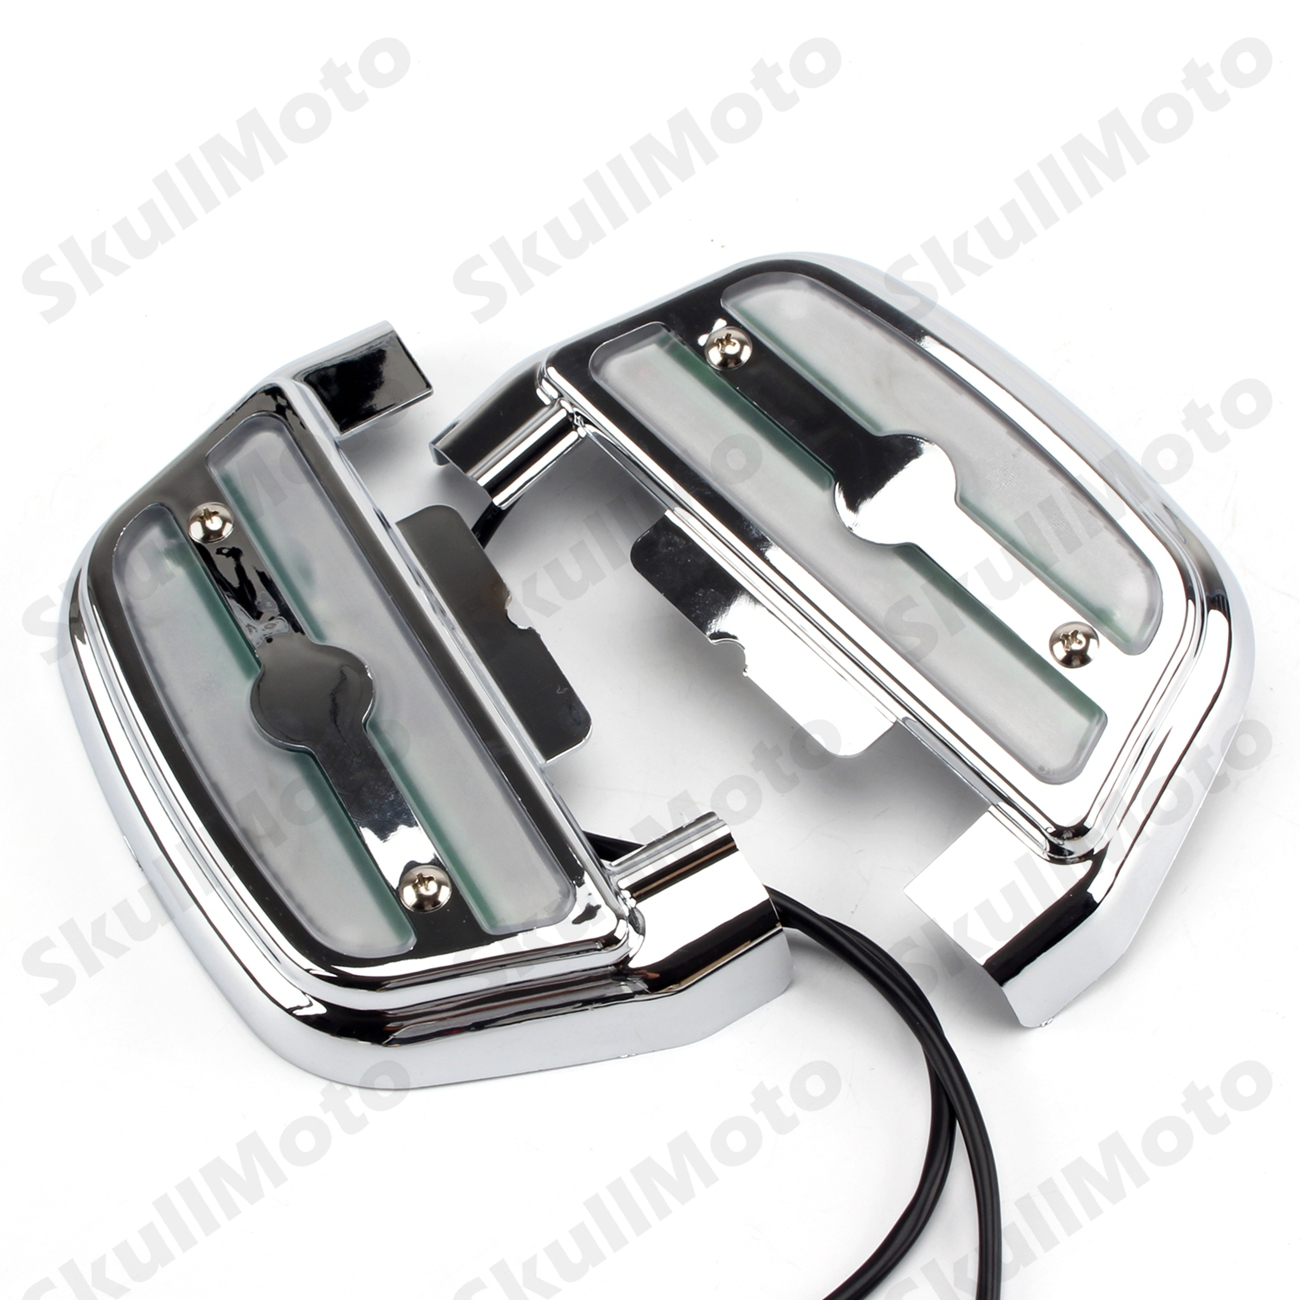 Motorcycle Lighted Passenger Footrest Footboard Cover Kit For Harley Touring Chrome Clear